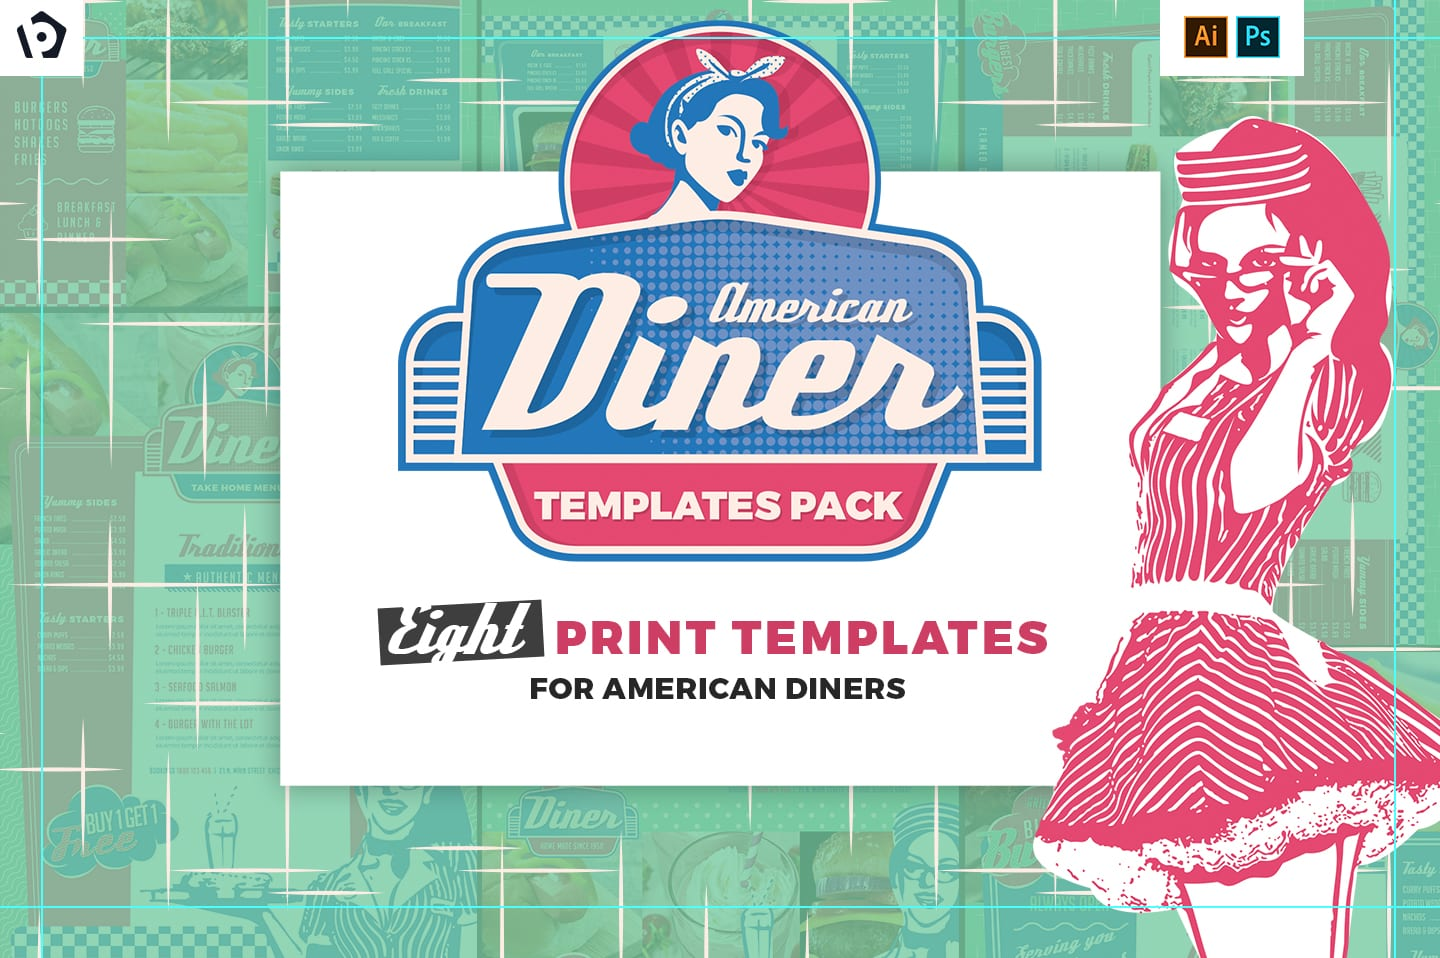 American Diner Templates Pack